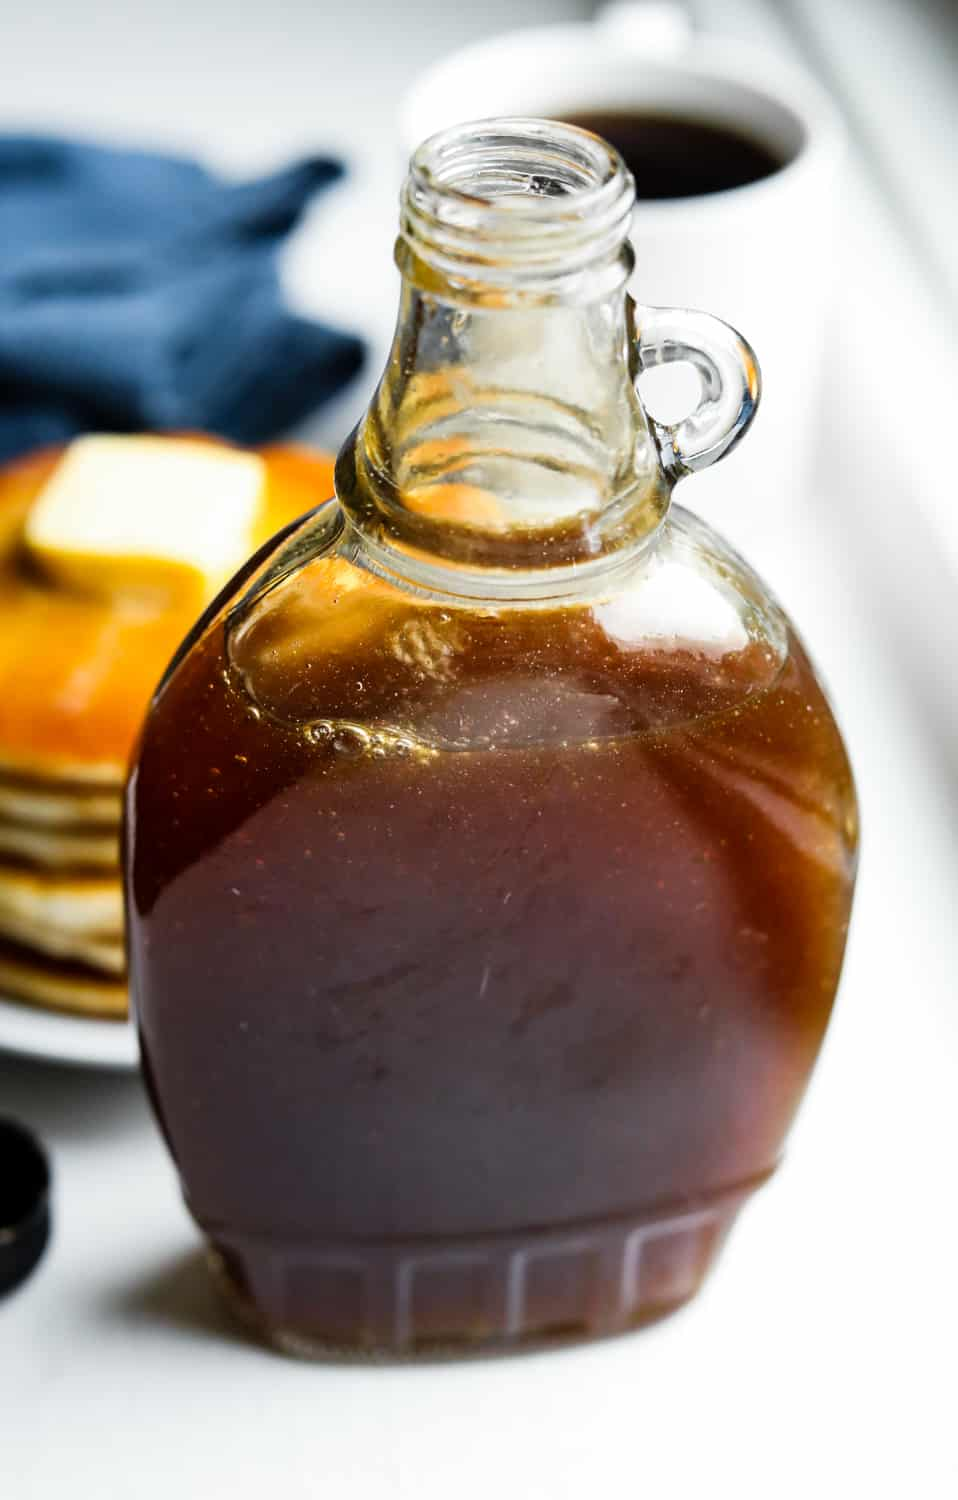 A bottle of maple syrup sat in front of a plate of pancakes, a blue napkin, and a cup of coffee.